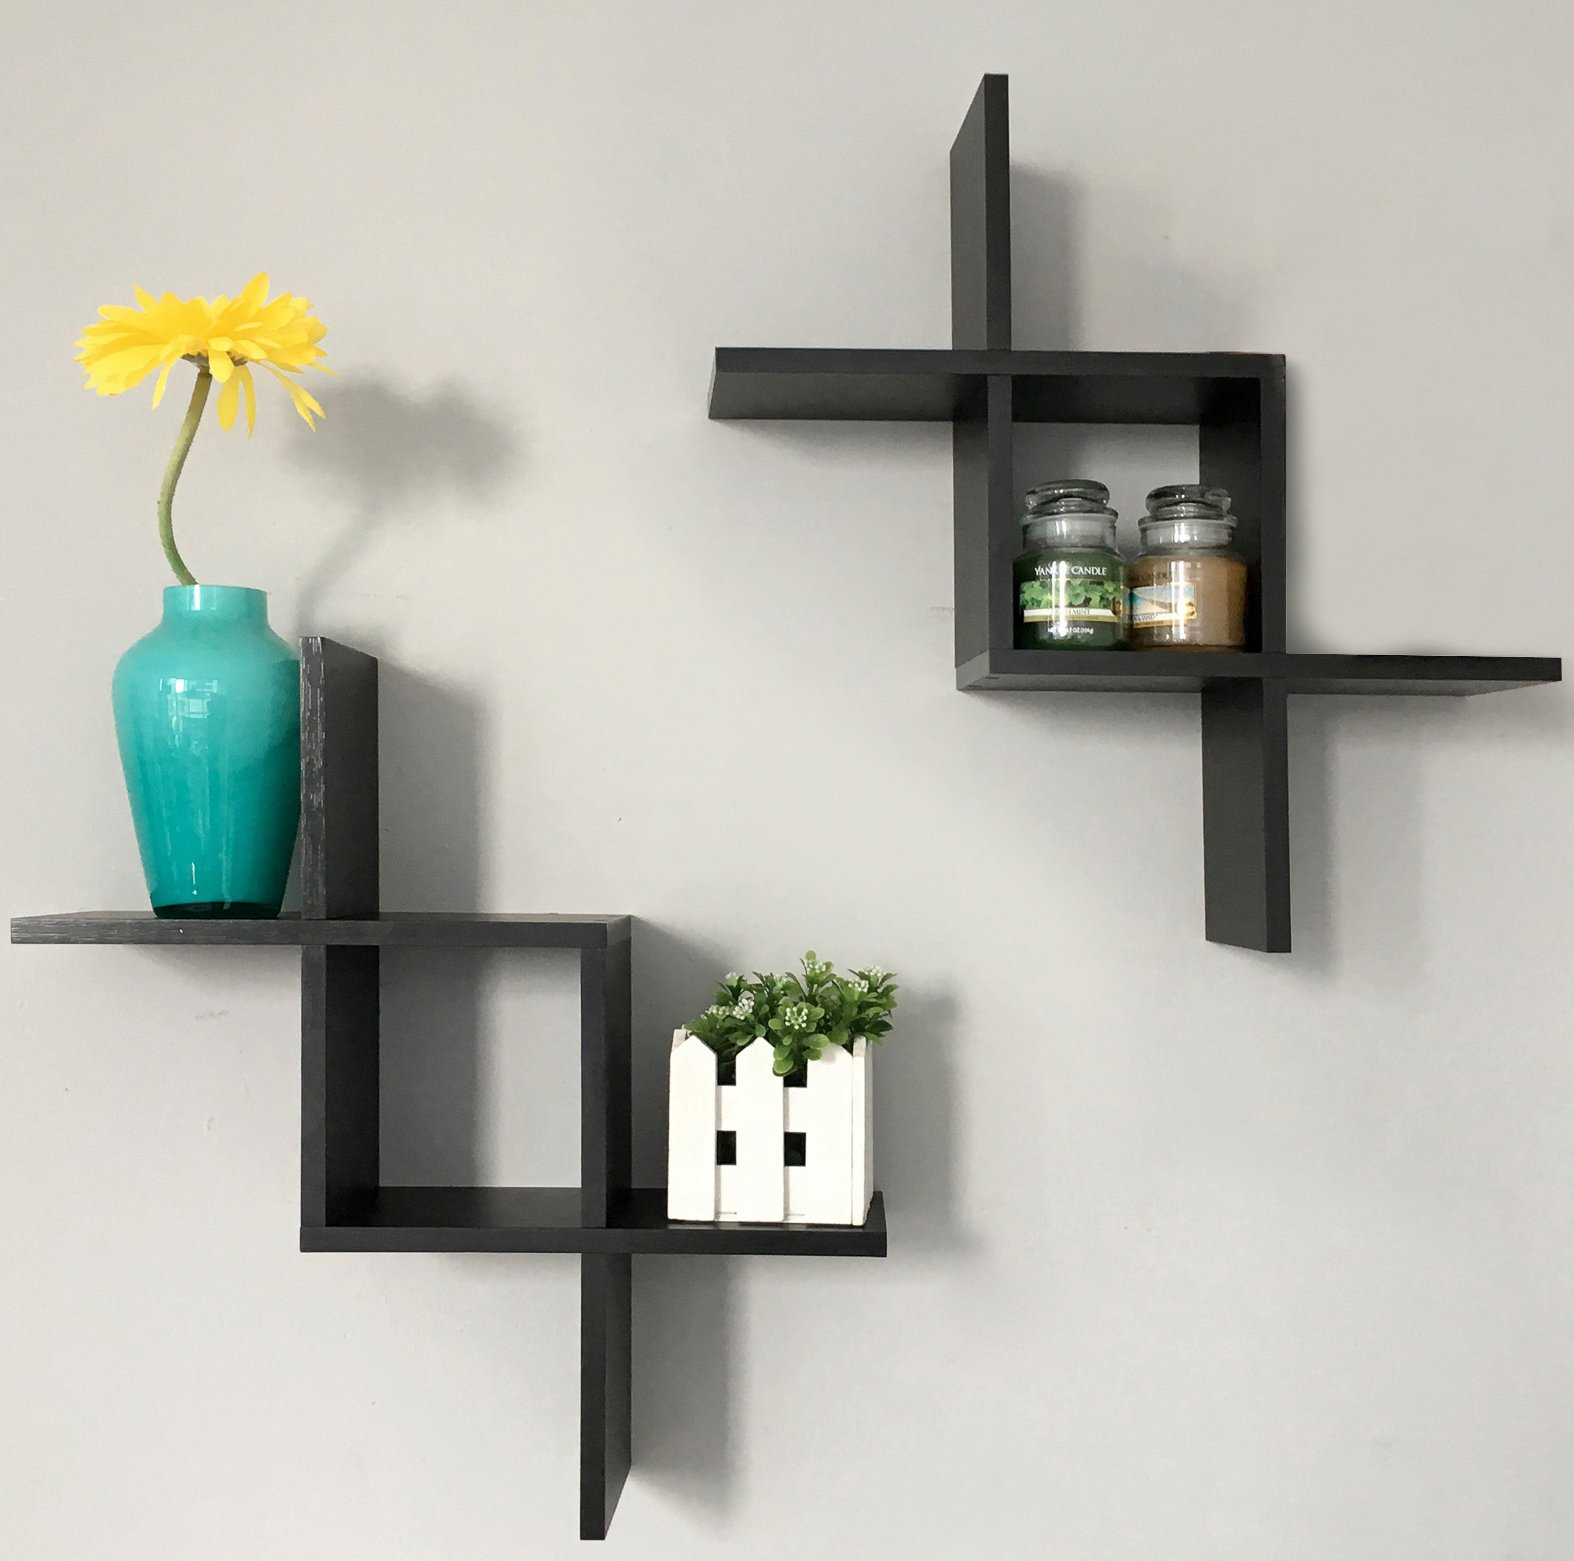 NEW Decorative Floating Wall Shelves Espresso for Living Room Office ...